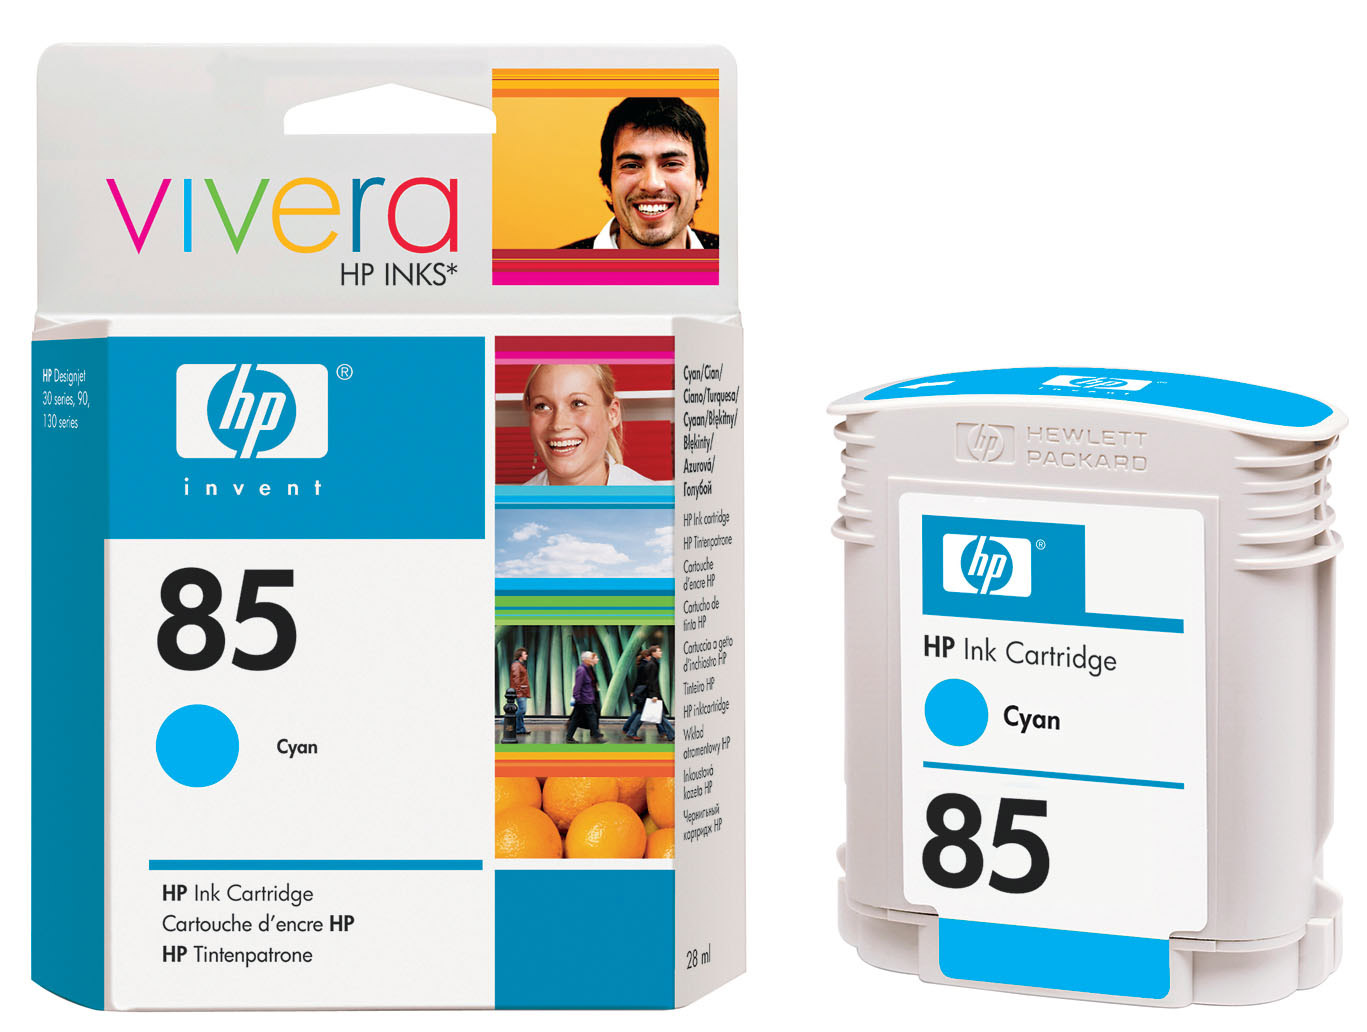 HP C9425A HP#85 printer cartridge